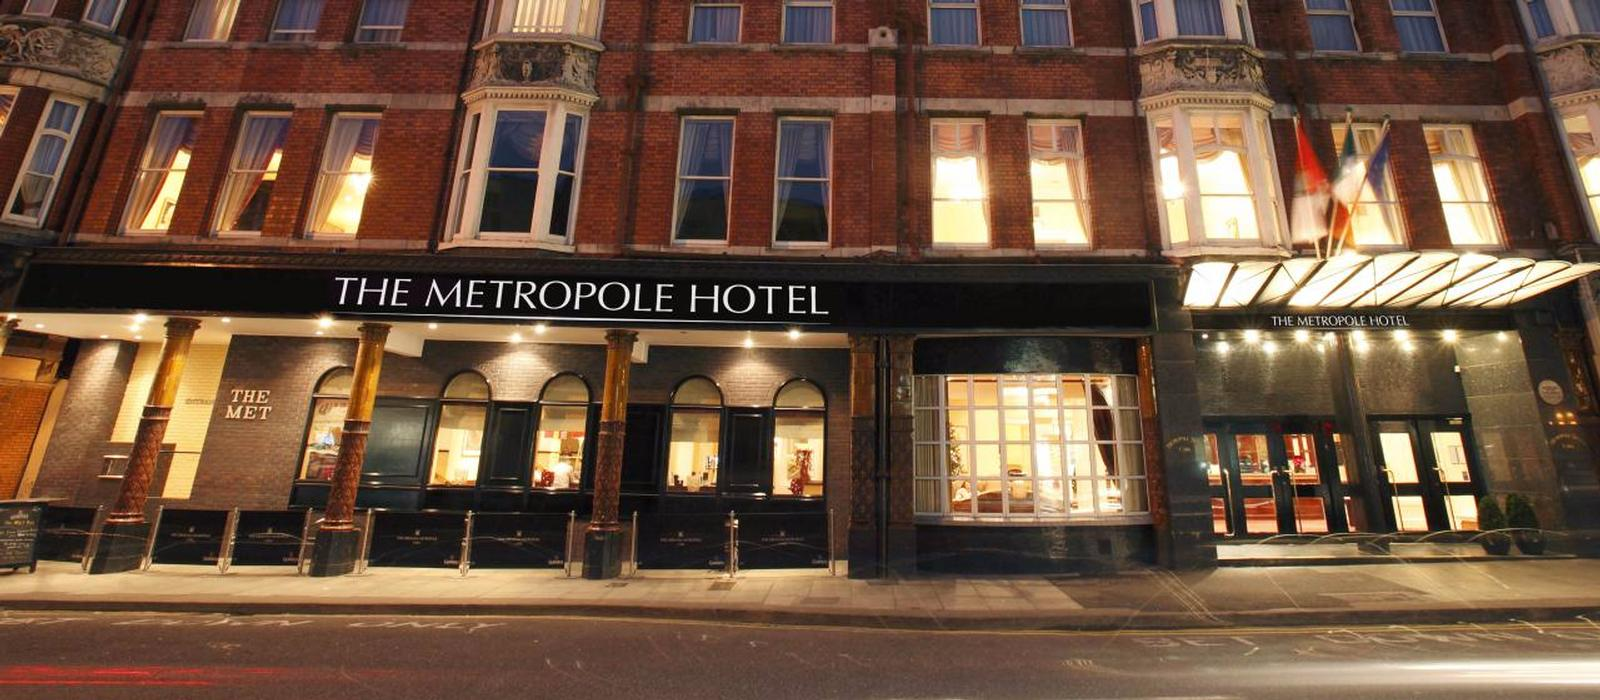 careers in The Metropole Hotel